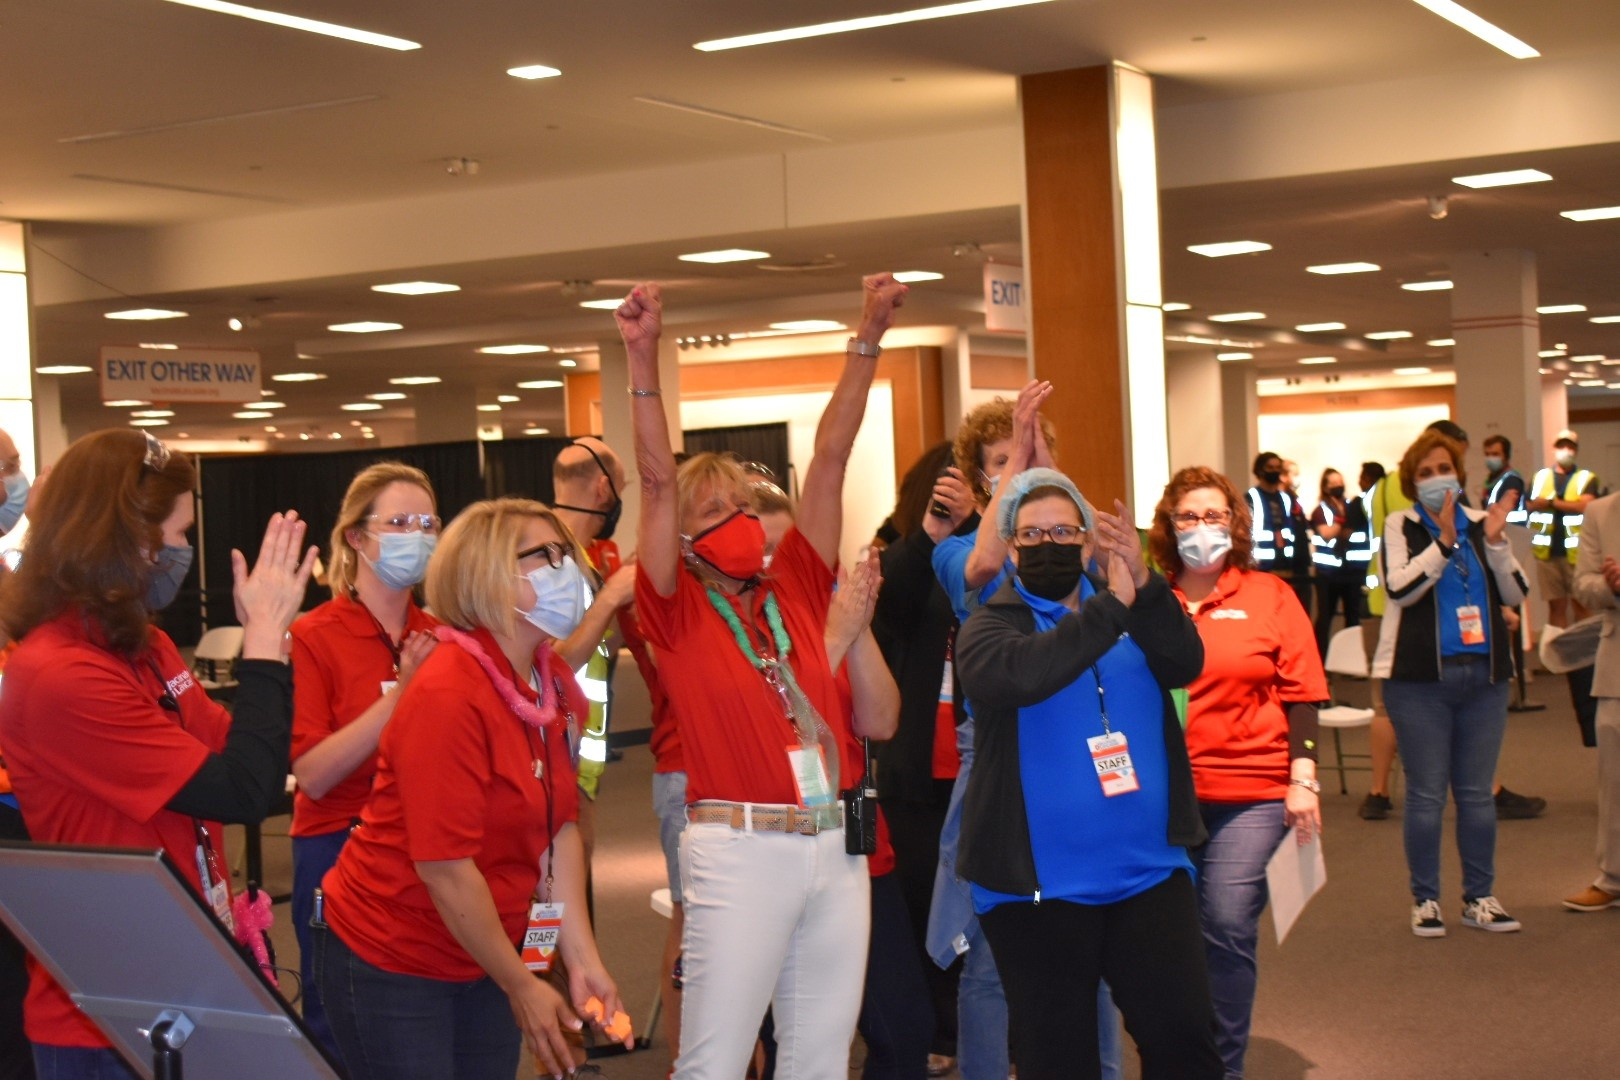 Staff cheer the final dose administered at the community vaccination center at Park City Center mall on Wednesday, June 30, 2021. (Source: Vaccinate Lancaster Coalition)